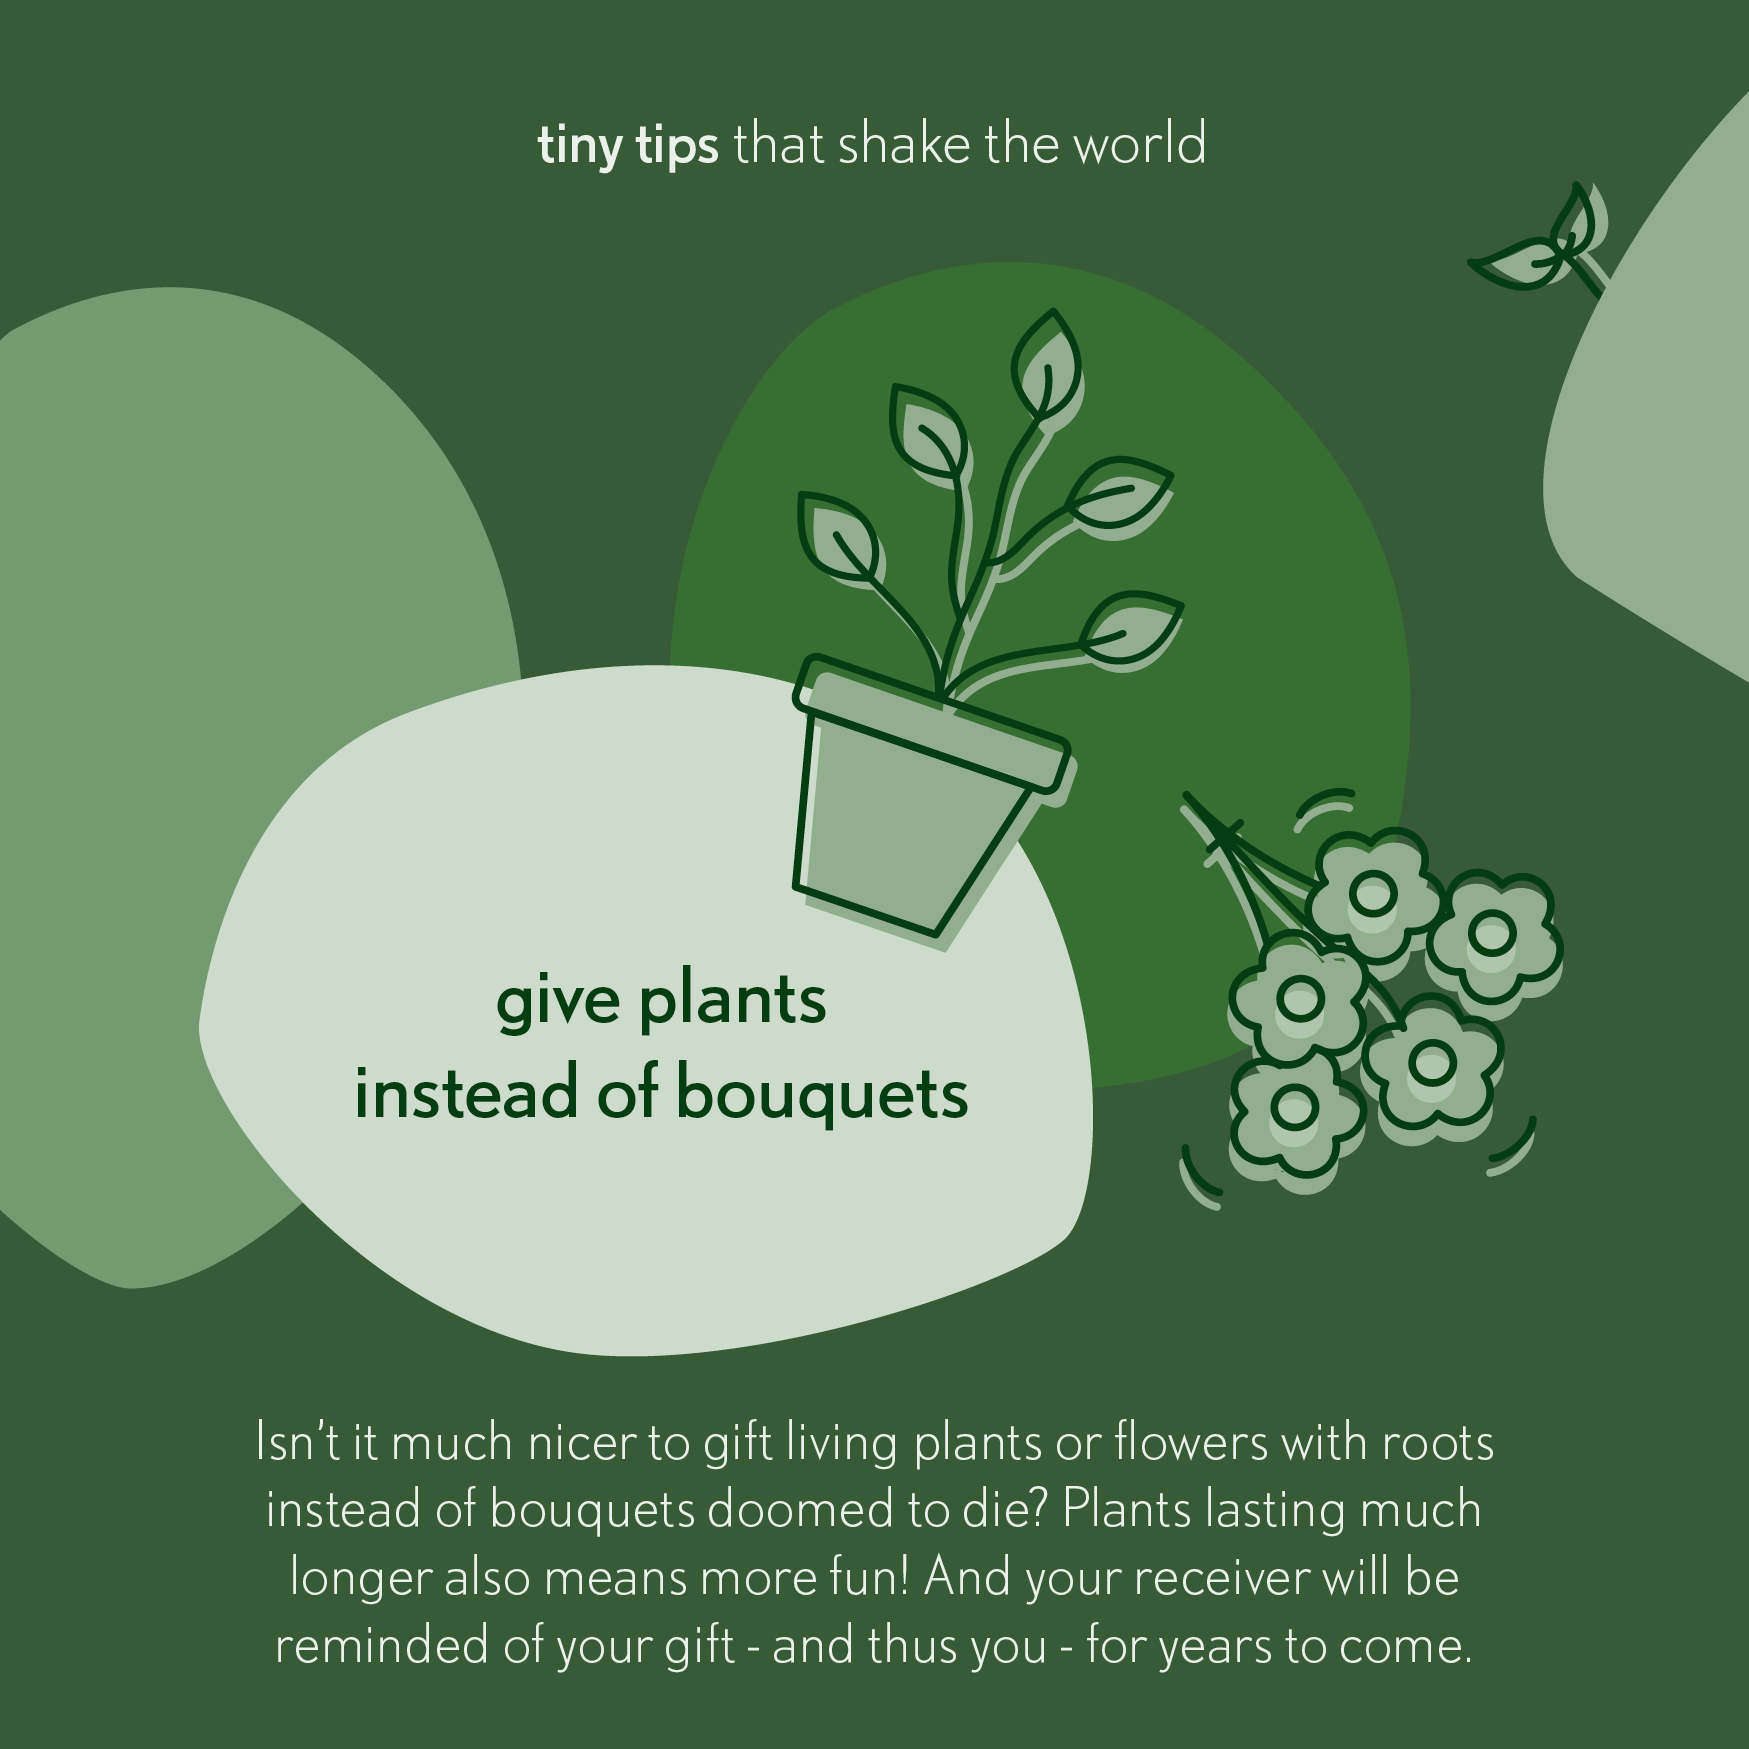 Tiny tips that shake the world give plants instead of bouquets